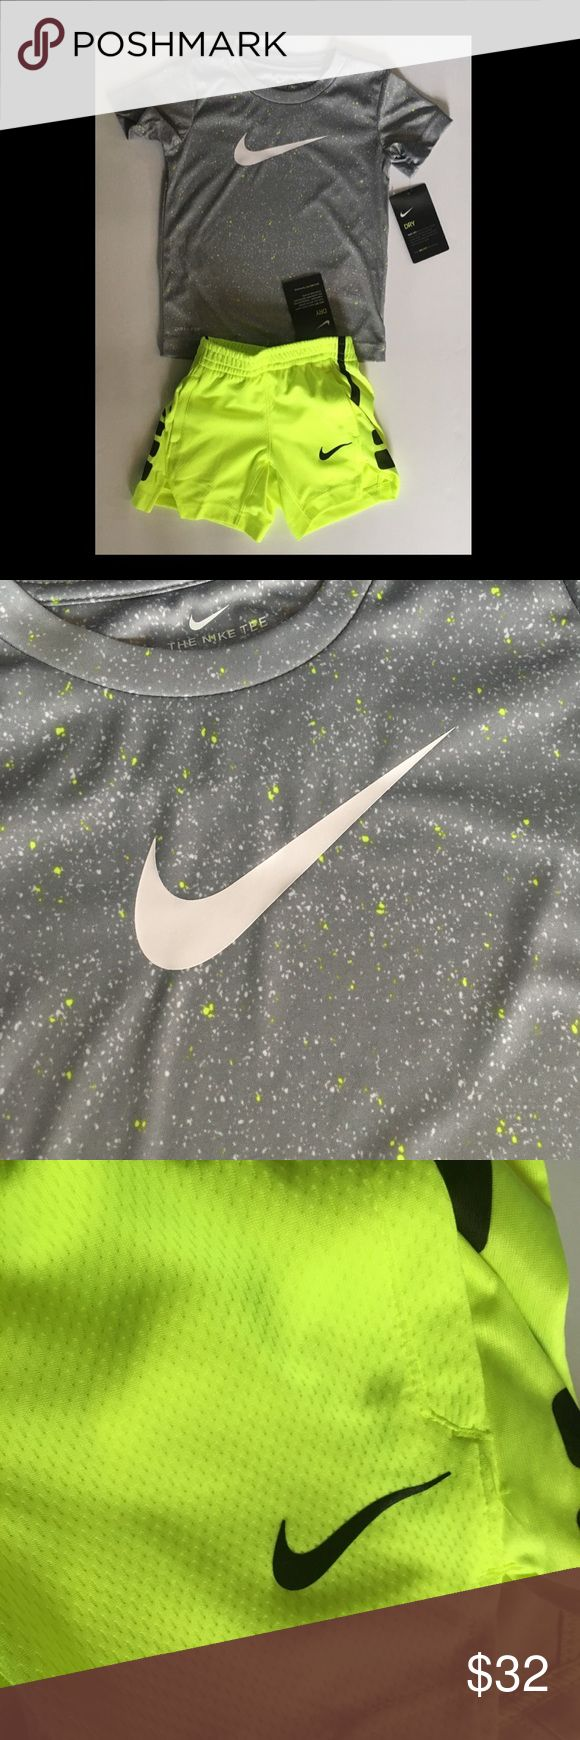 NWT Boys 2T Nike shirt and shorts NWT Boys or girls 2T Nike shirt and basketball shorts   Gray shirt with speckles of neon green. Shorts are neon green.  Thanks for looking! Nike Matching Sets